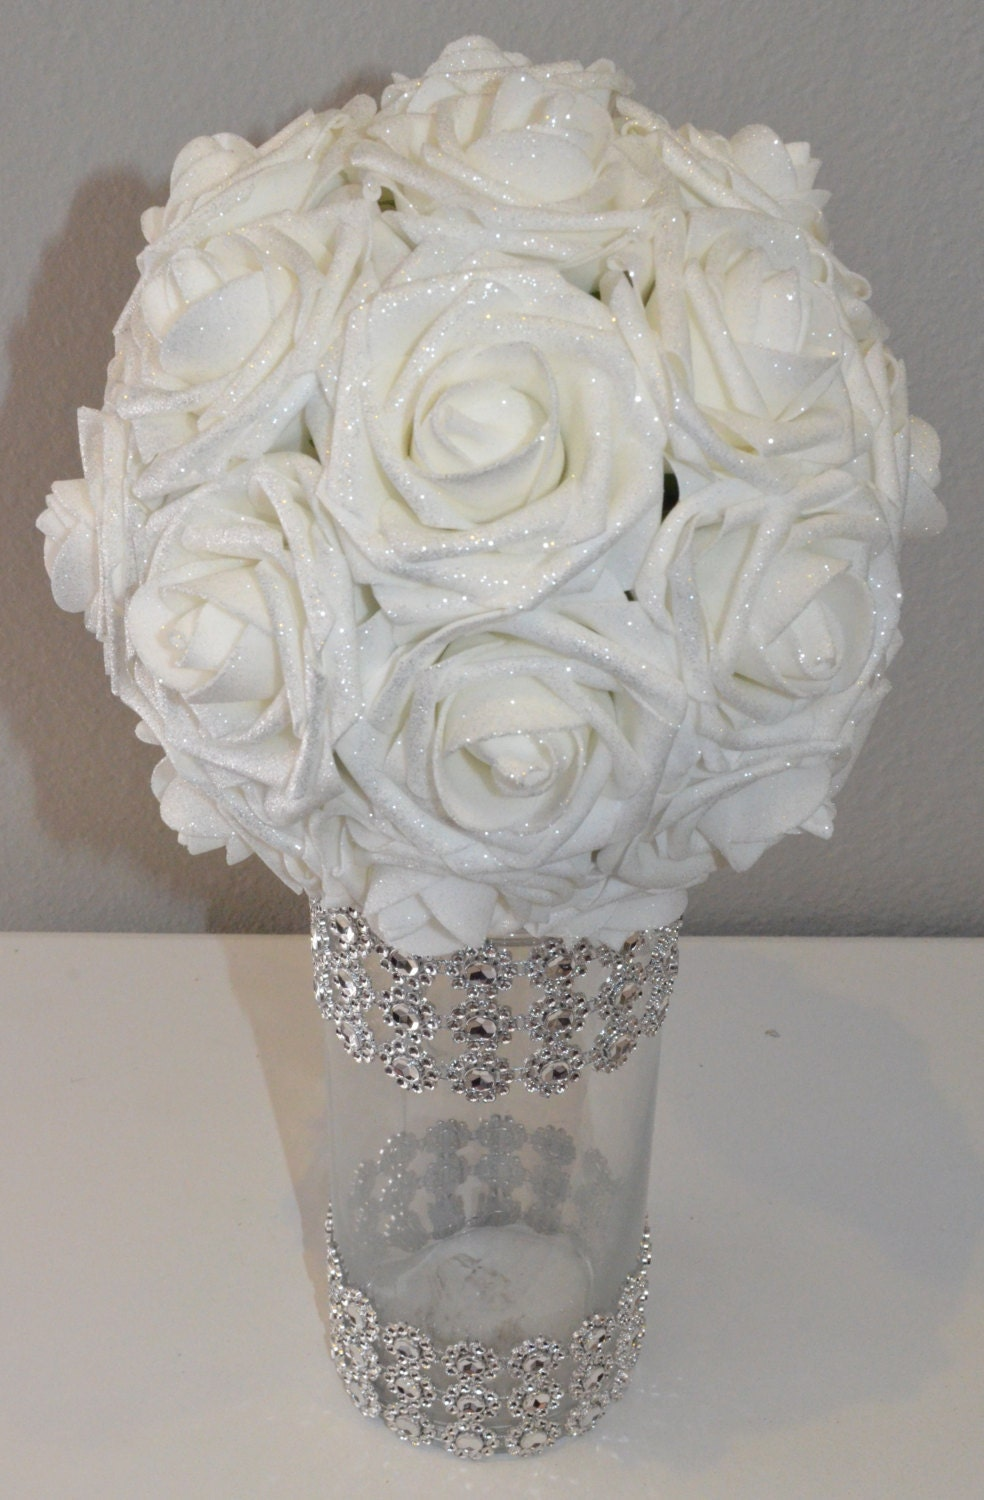 Sparkling shimmer flower ball wedding centerpiece